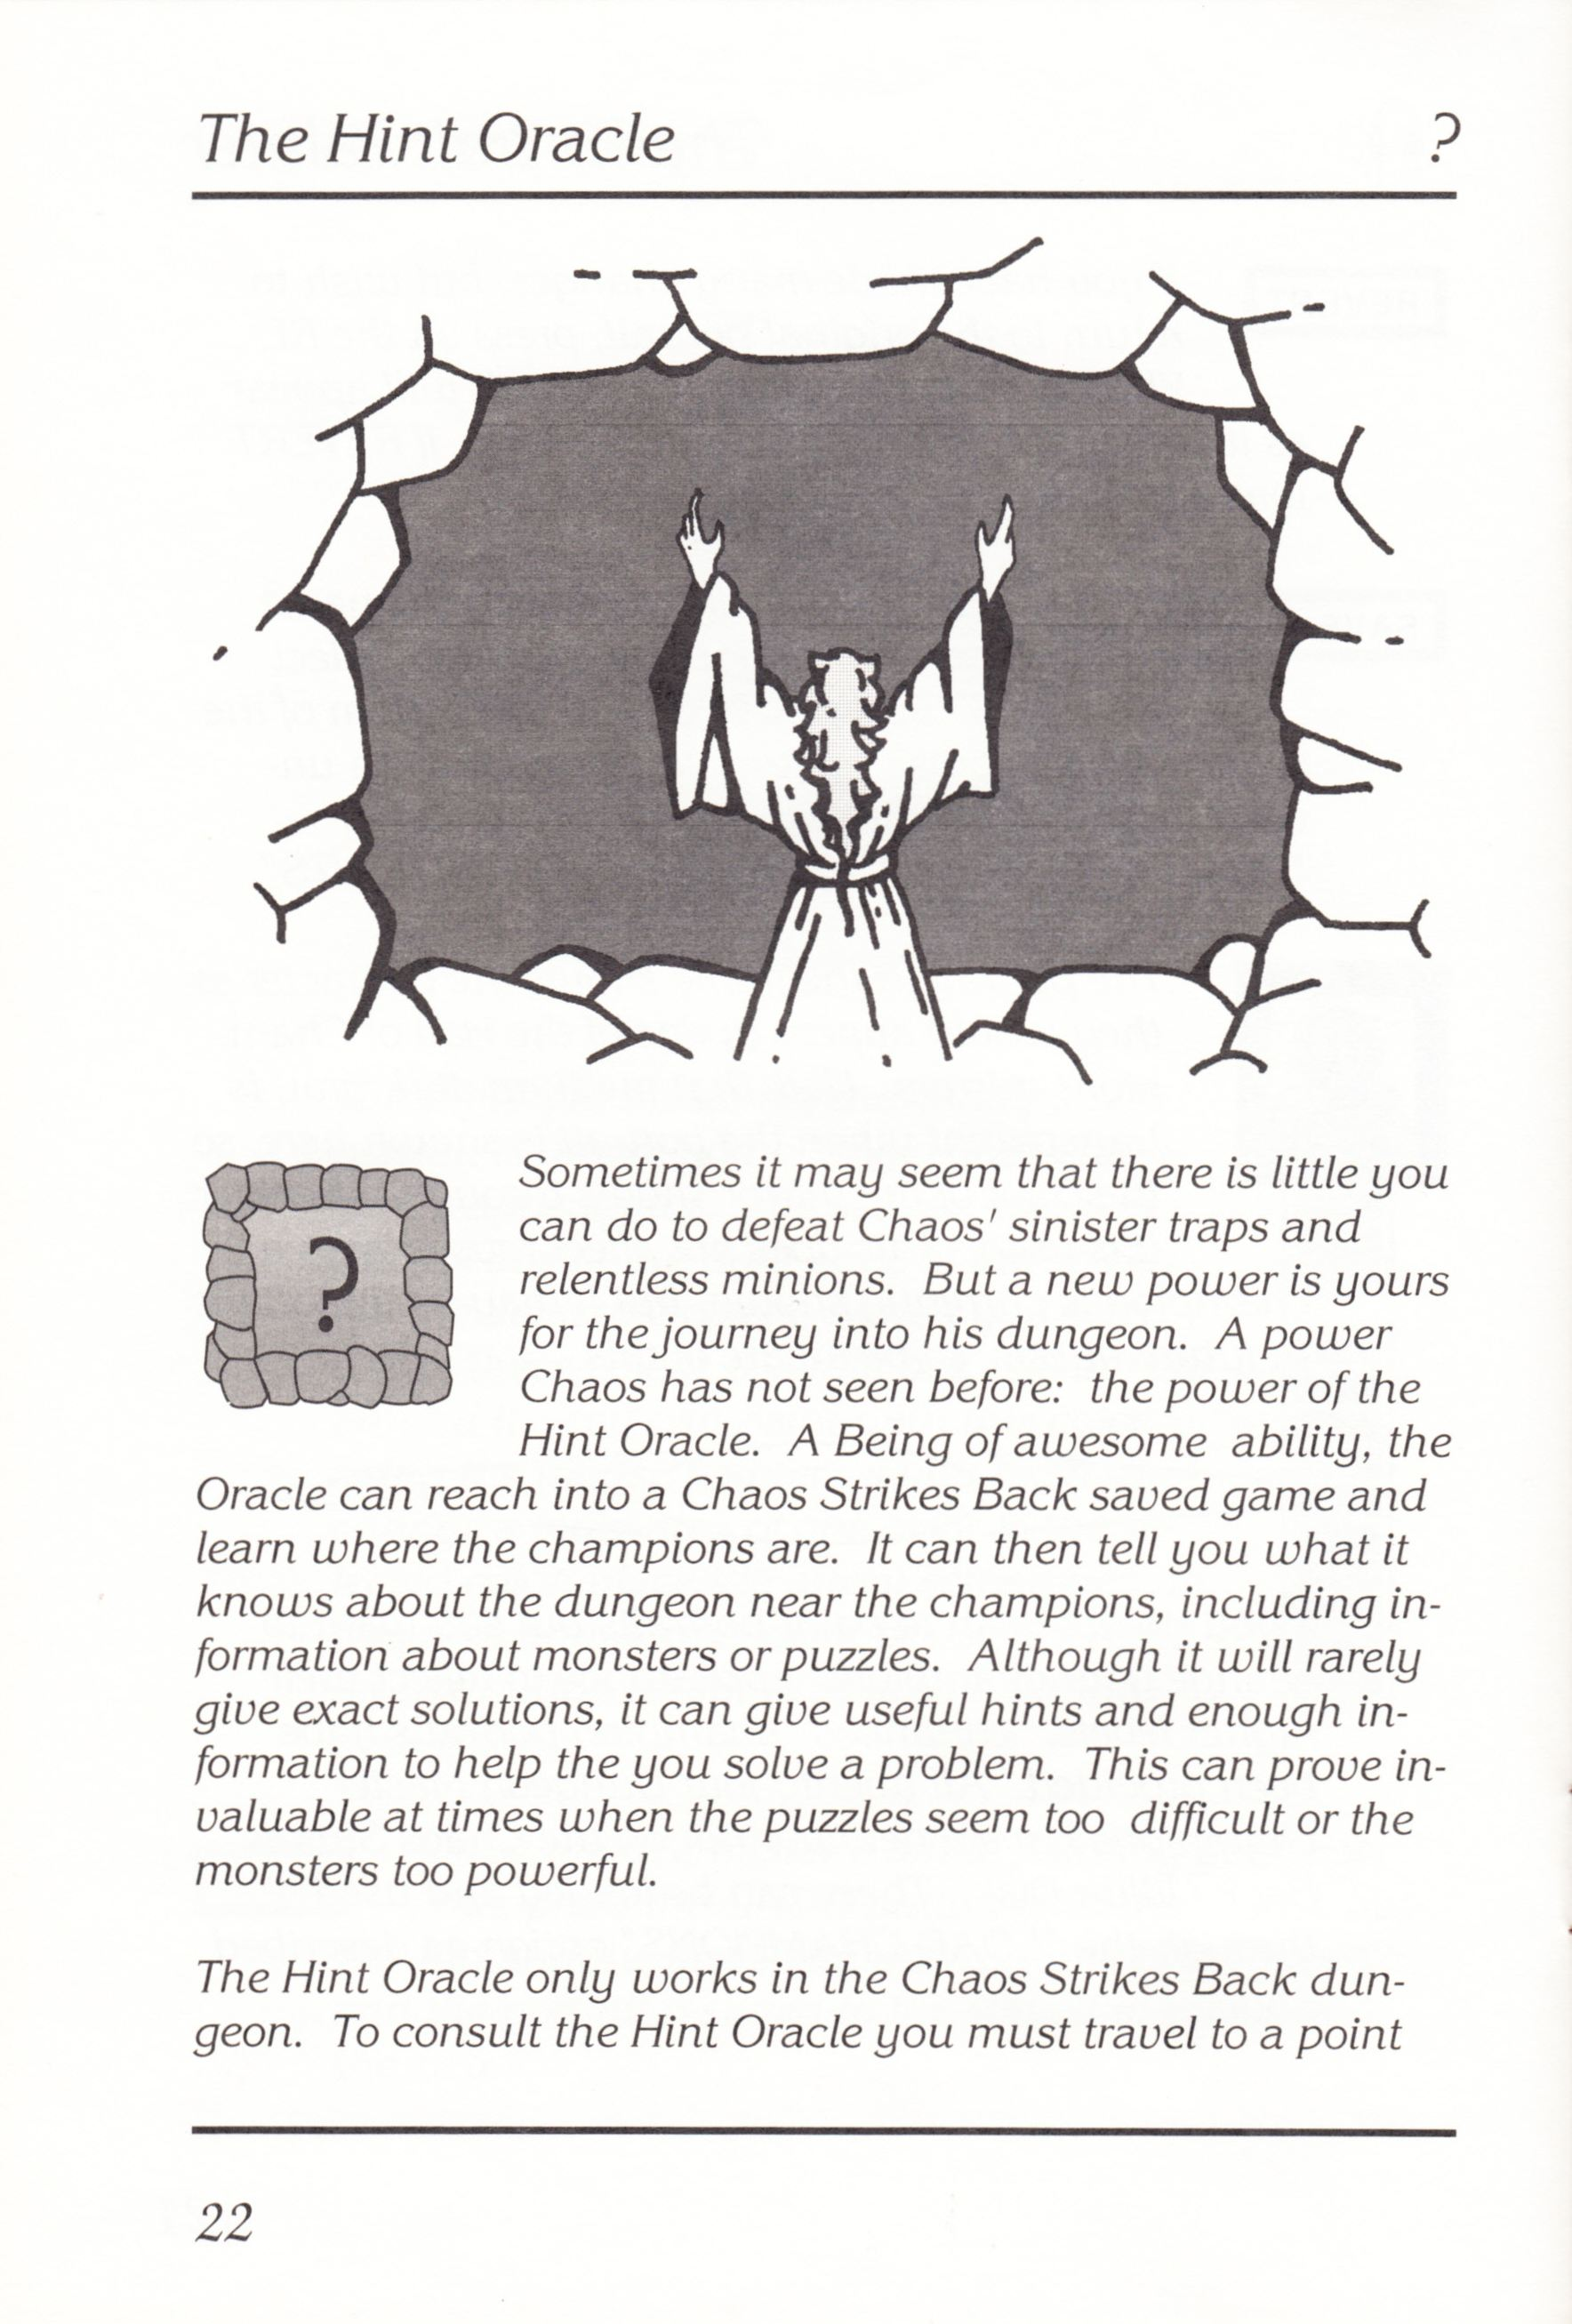 Game - Chaos Strikes Back - UK - Atari ST - Manual - Page 024 - Scan